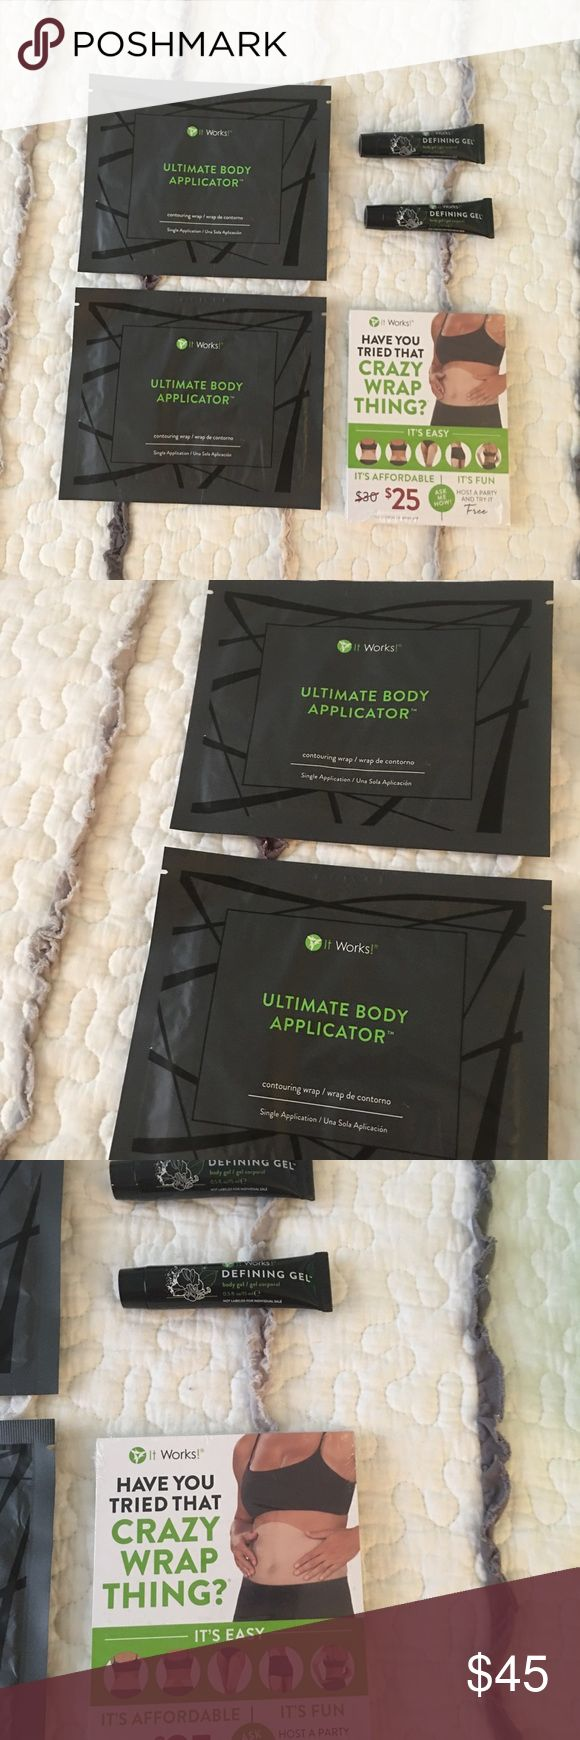 IT WORKS PRODUCTS It Works Products!!! The items listed below is what you get⬇️  2 Body wraps 2 Defining Gel Tubes 1 (25 pack) Blitz Cards  Everything you see in the photo is what you get. Each item is brand new. I'm a It Works distributor and looking to get rid of some extra stuff! You are getting a good deal because each body wrap is $25 a piece and I'm letting you have all of the items for $50.00!!!   Message me or comment below if you have questions! it works Other